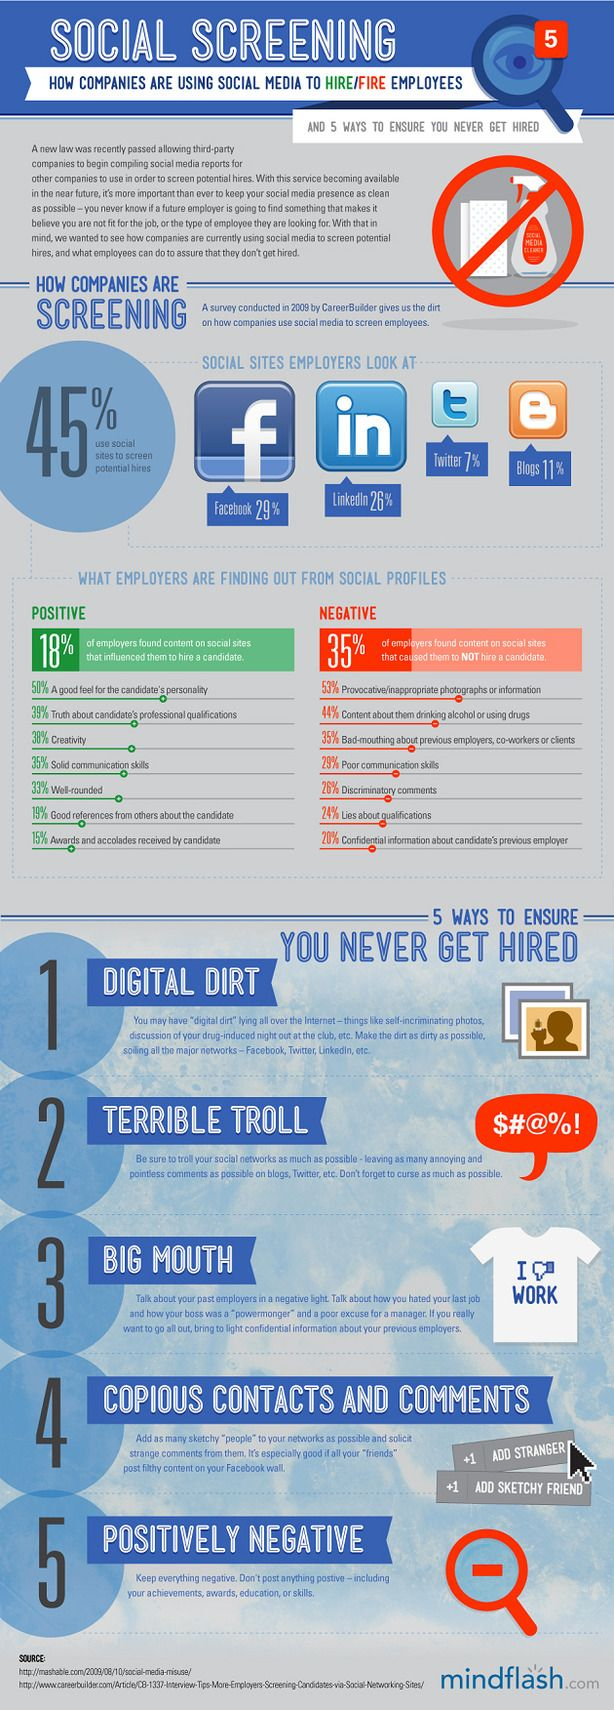 Infographic: How Employers Use Social Media to Hire and Fire